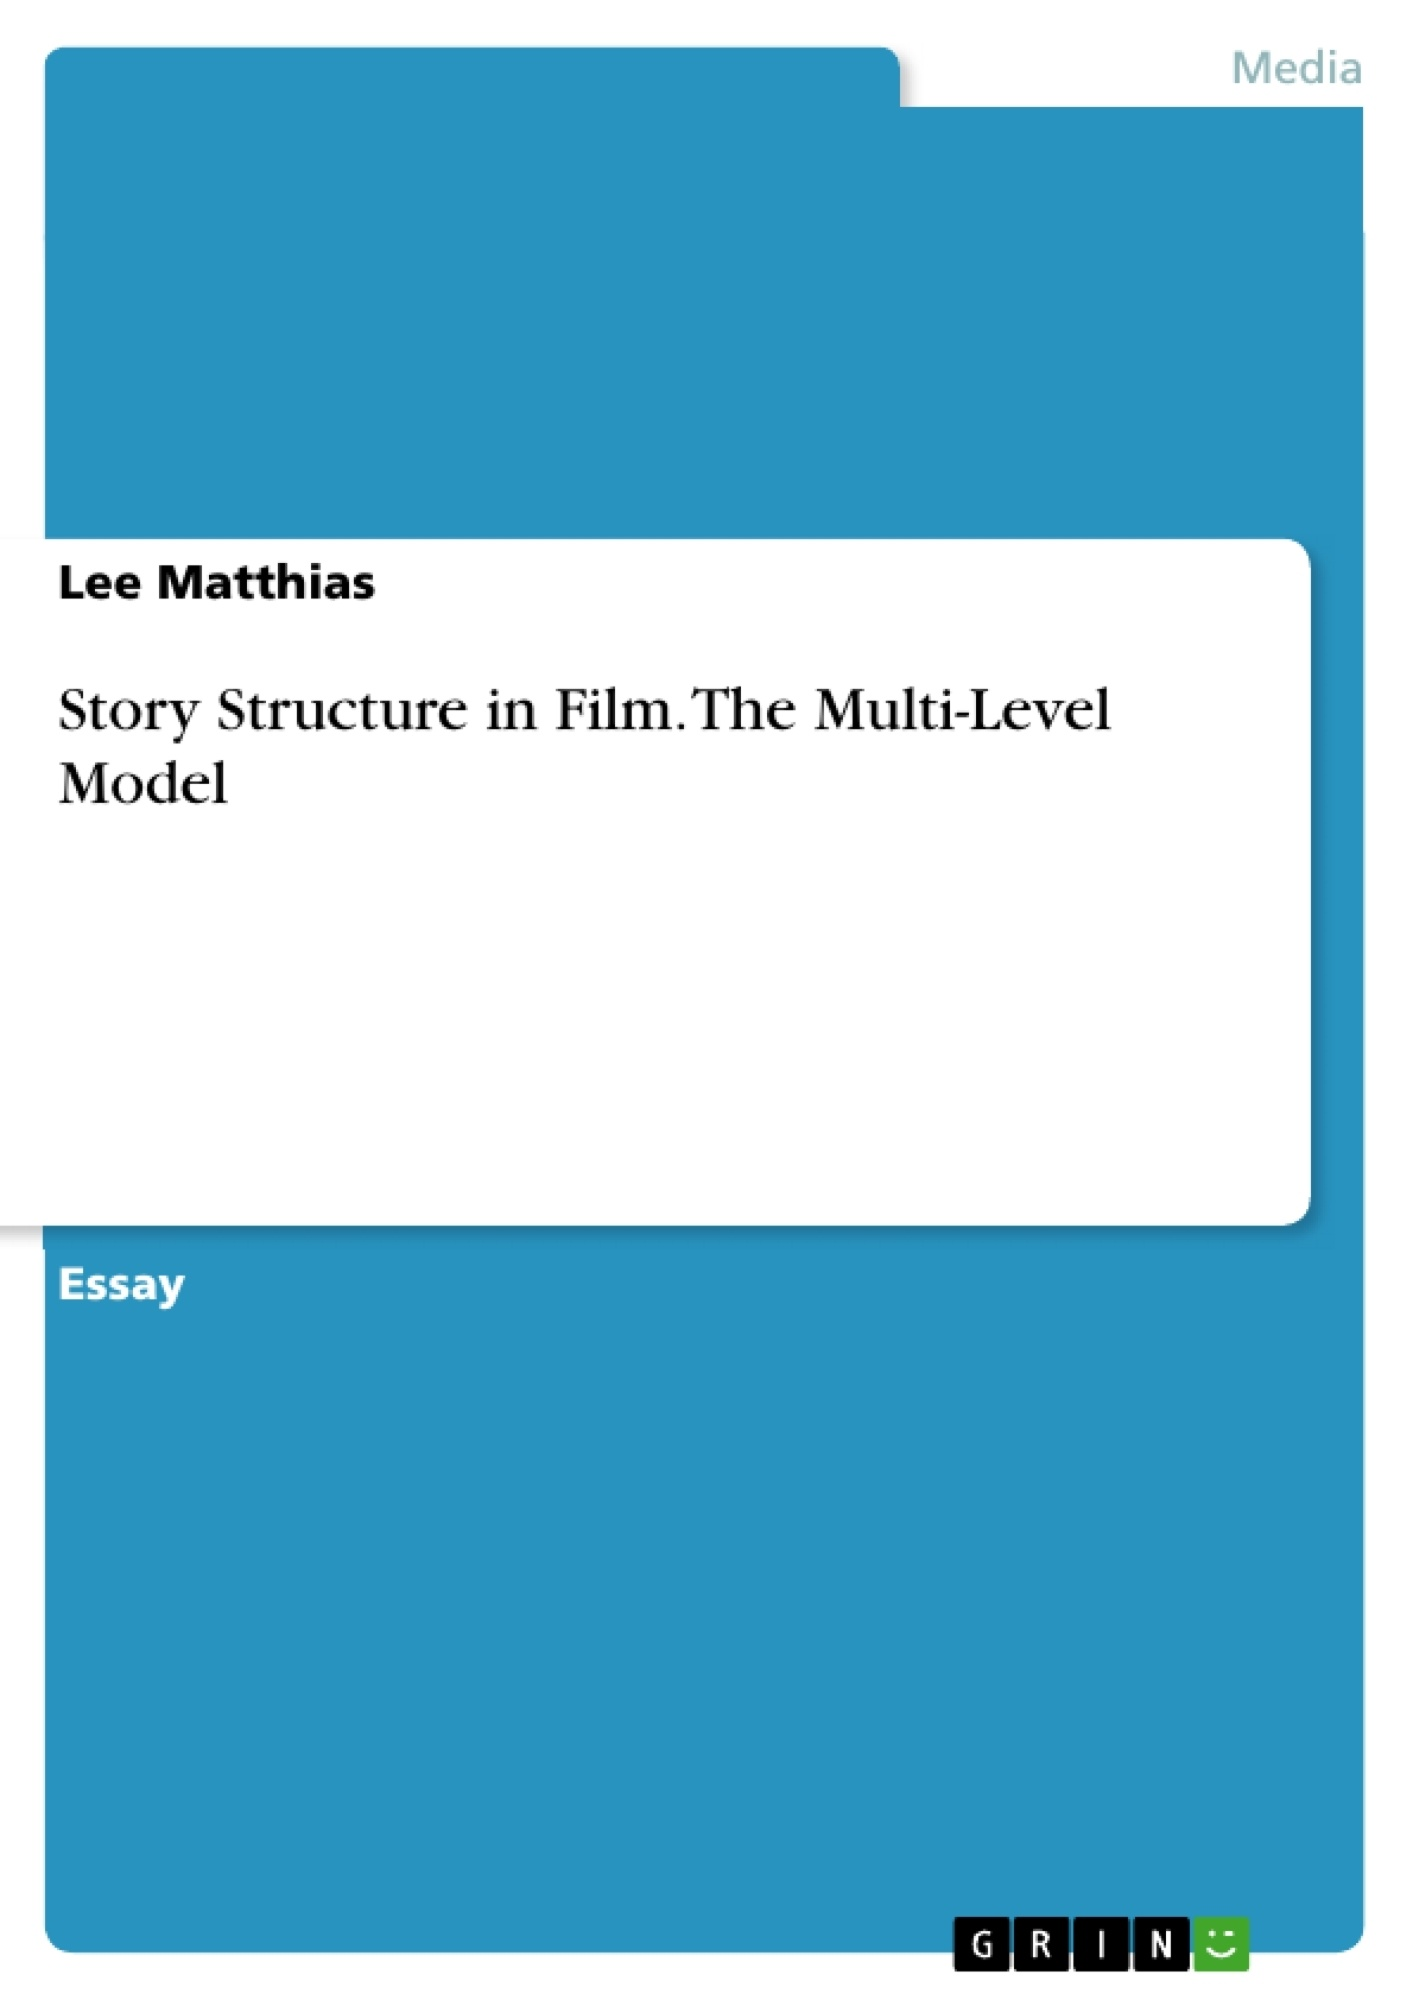 Title: Story Structure in Film. The Multi-Level Model